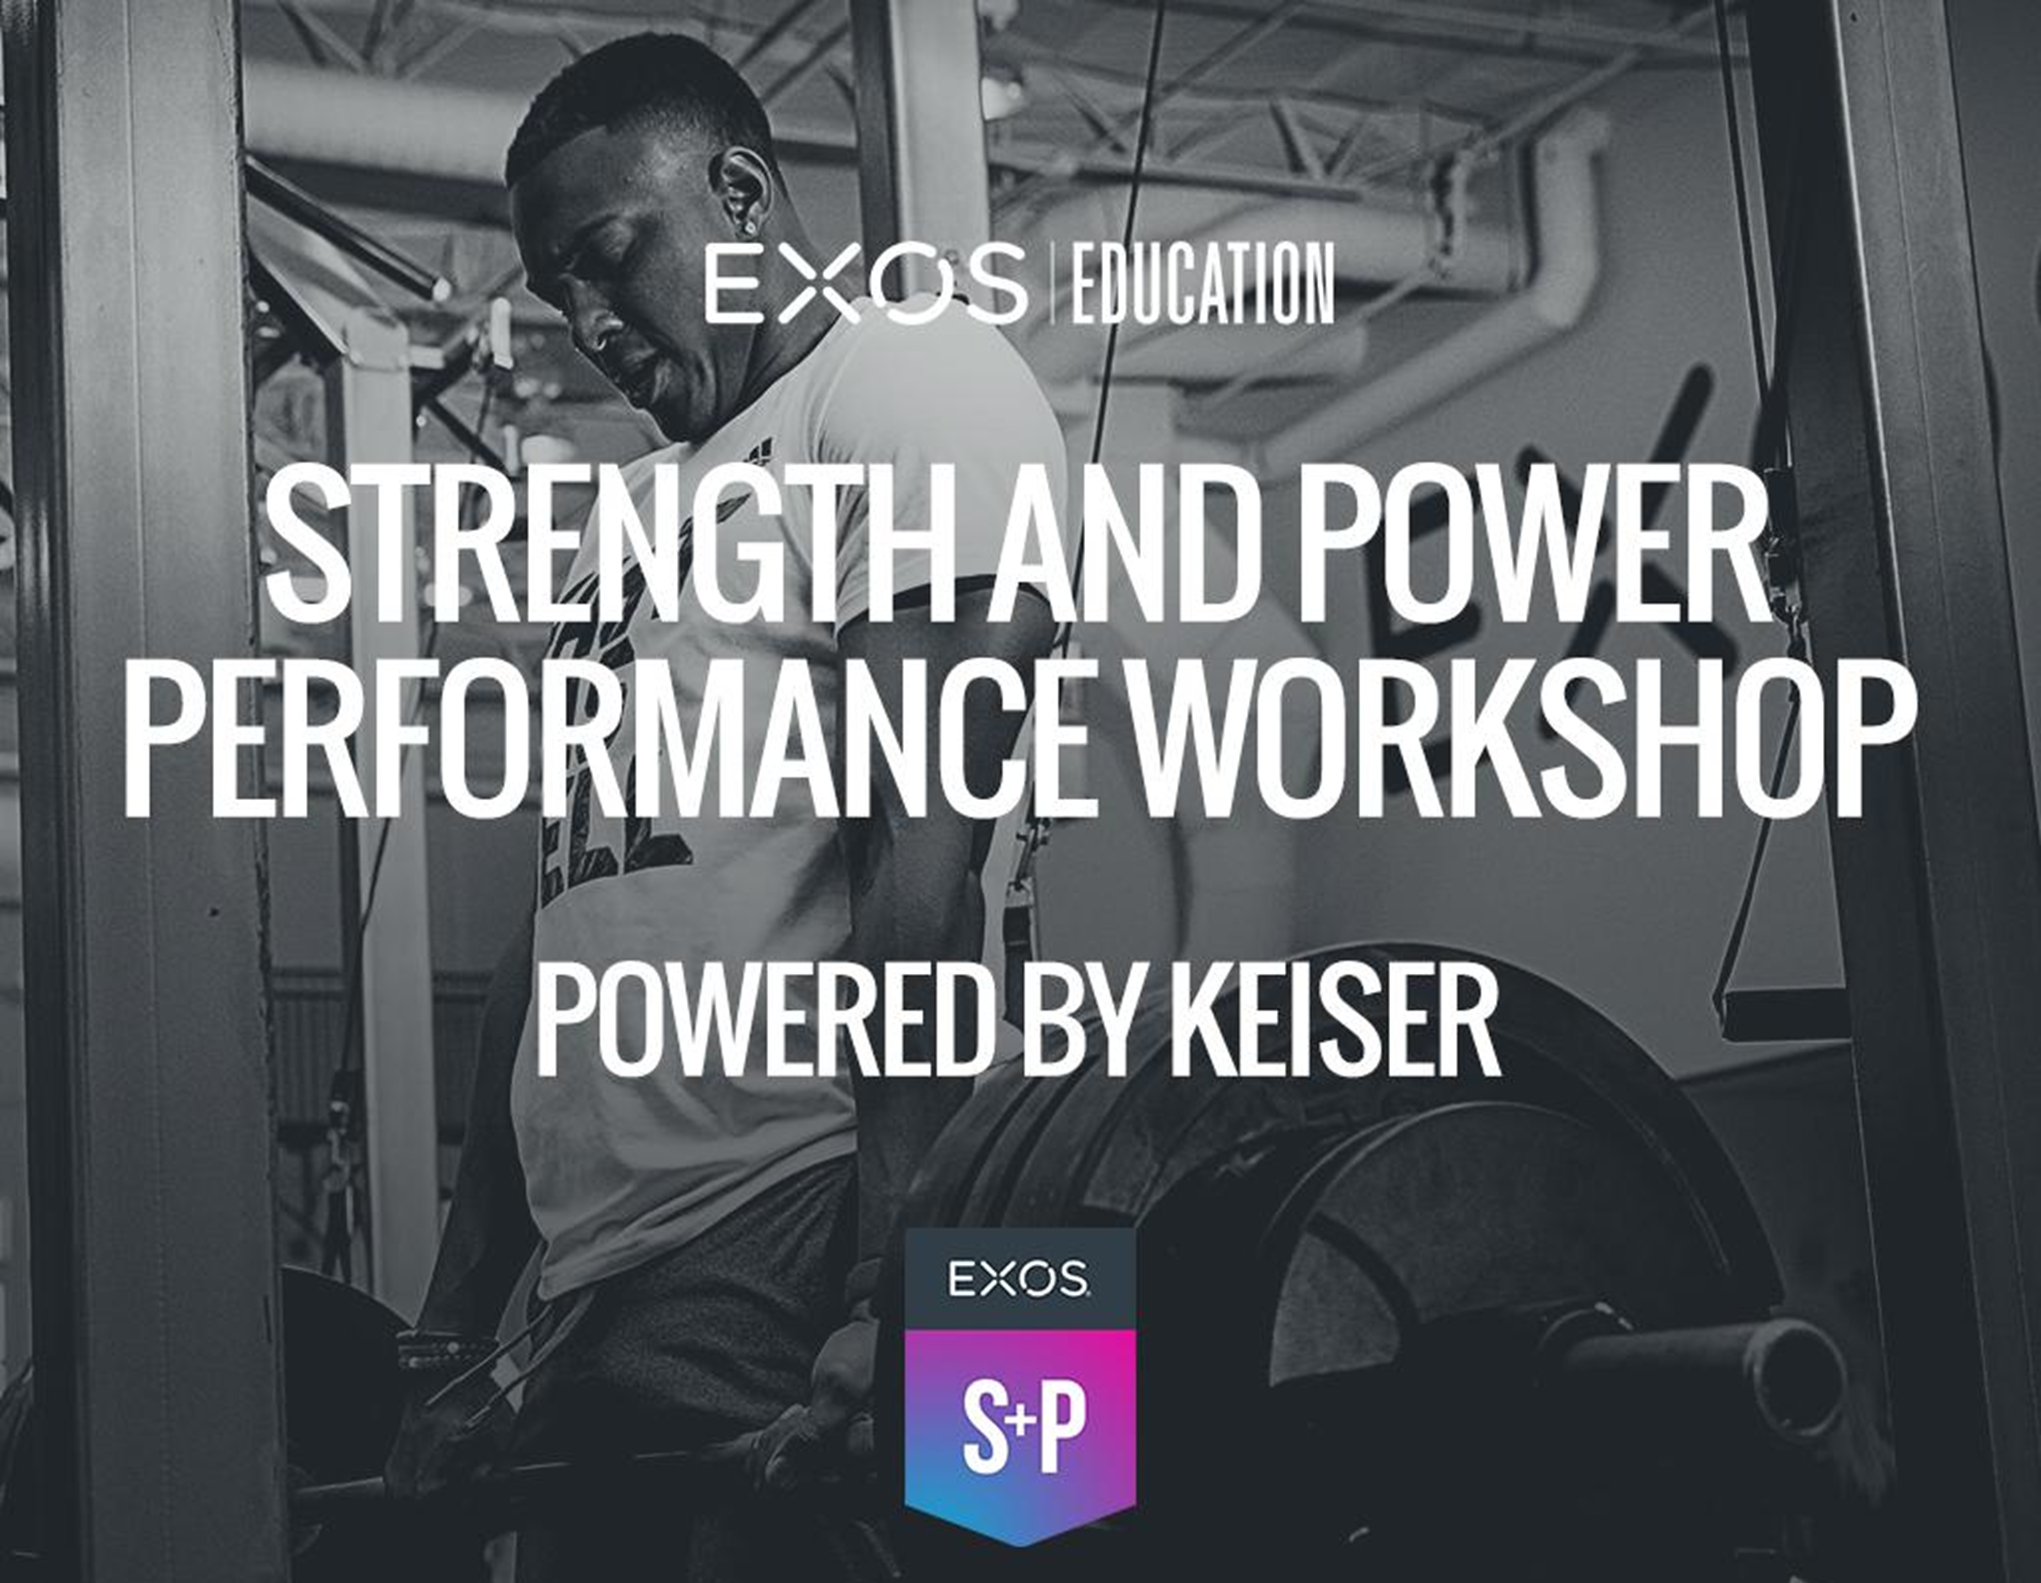 EXOS Strength and Power Performance Workshop